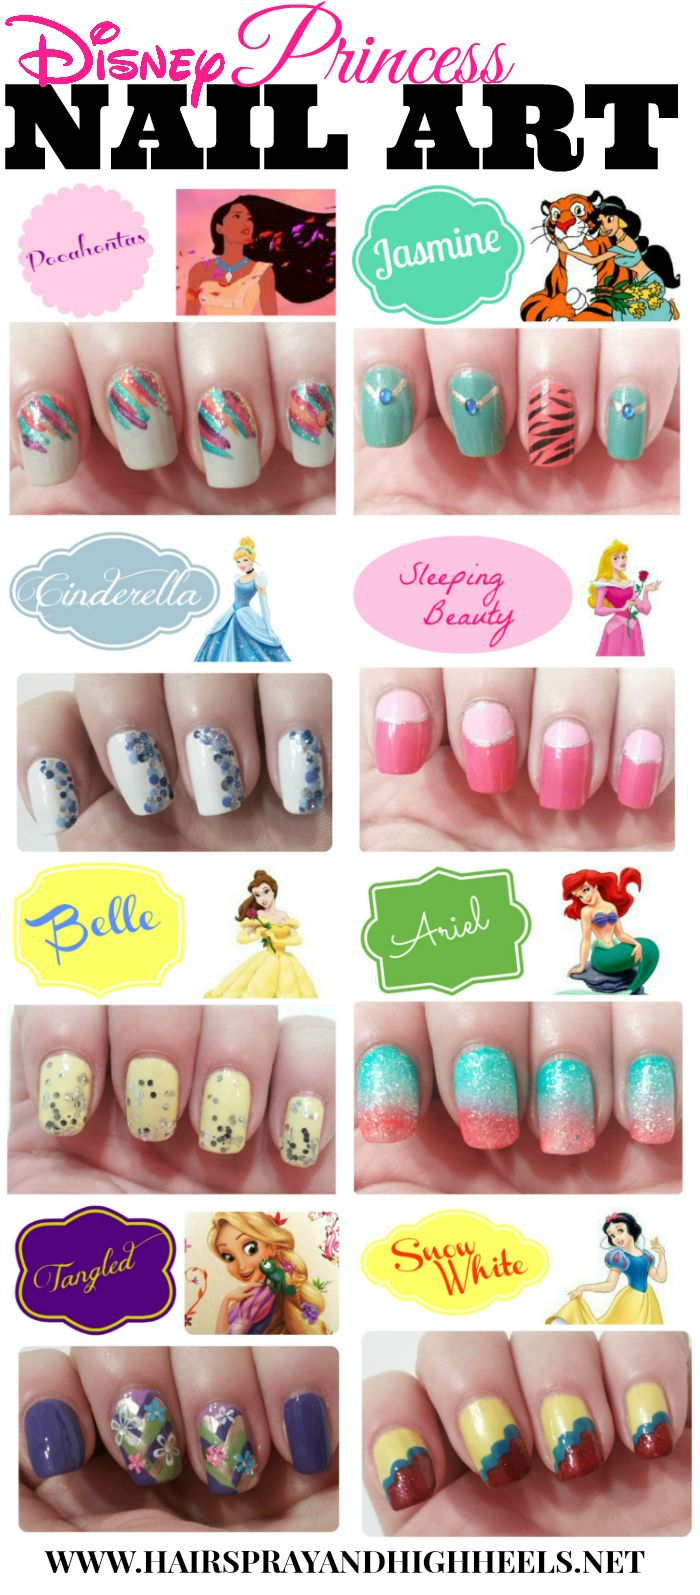 Disney Princess Inspired Nails - Nagel, Nagellak en Nagels lakken